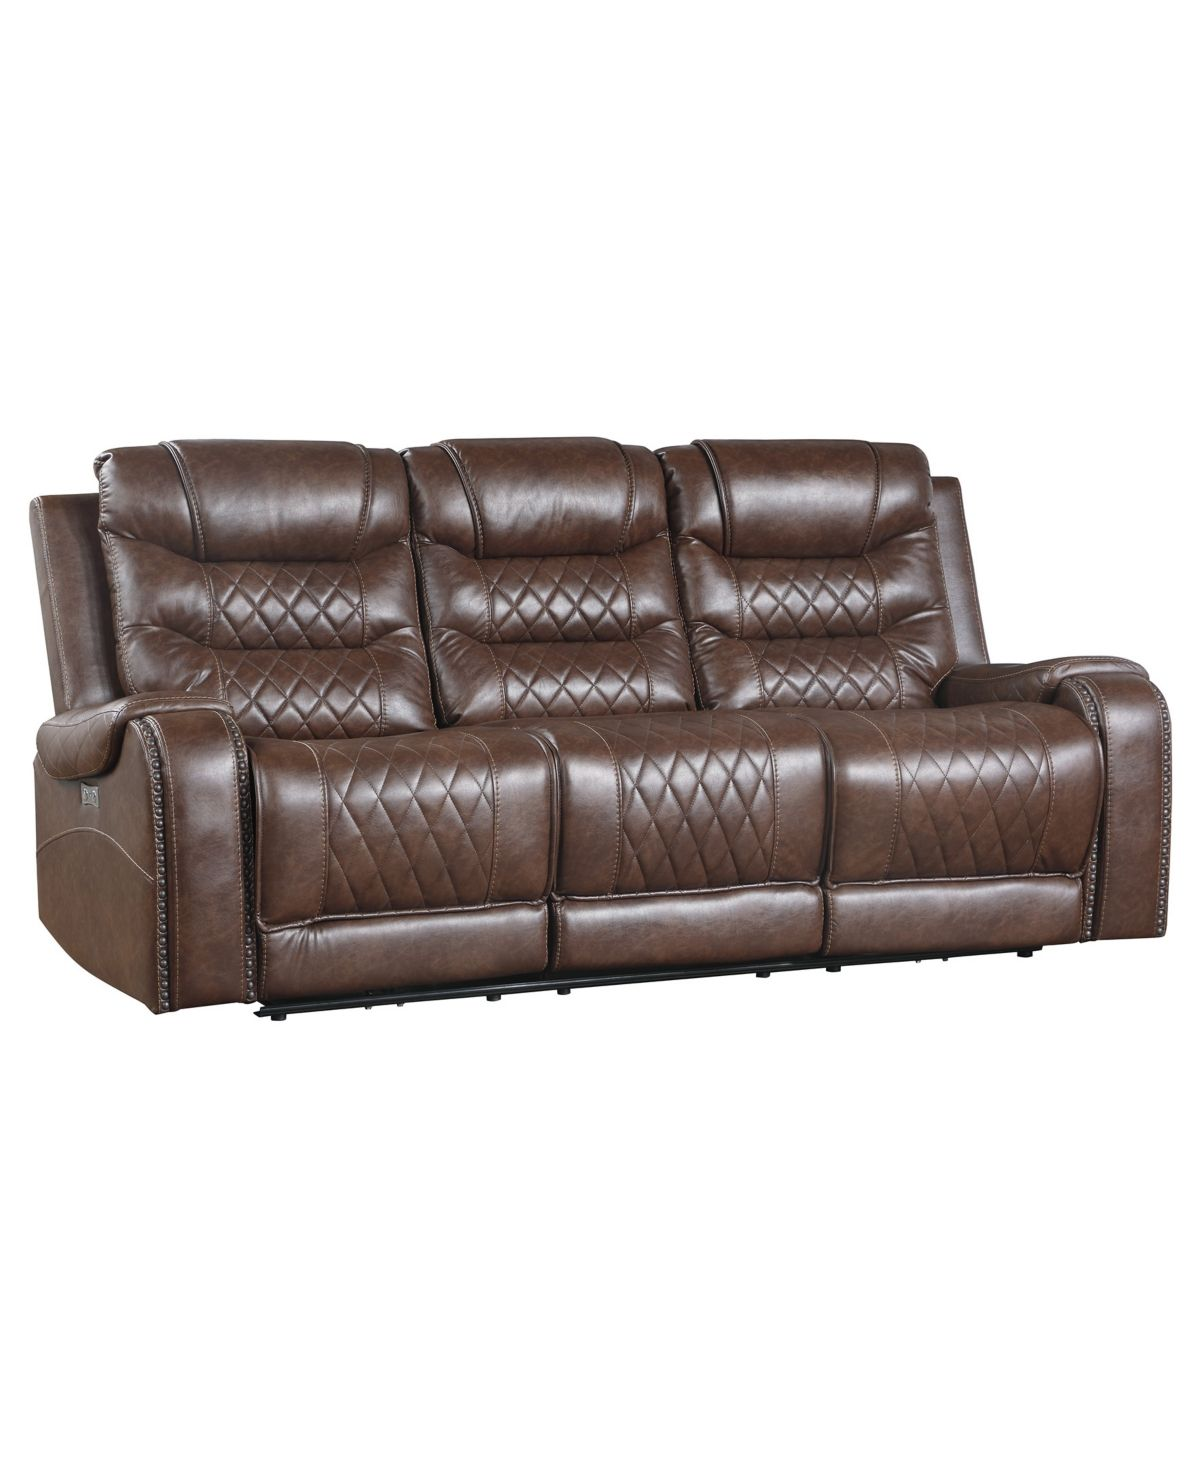 Bailey Power Recliner Sofa Brown In 2020 Reclining Sofa Sofa